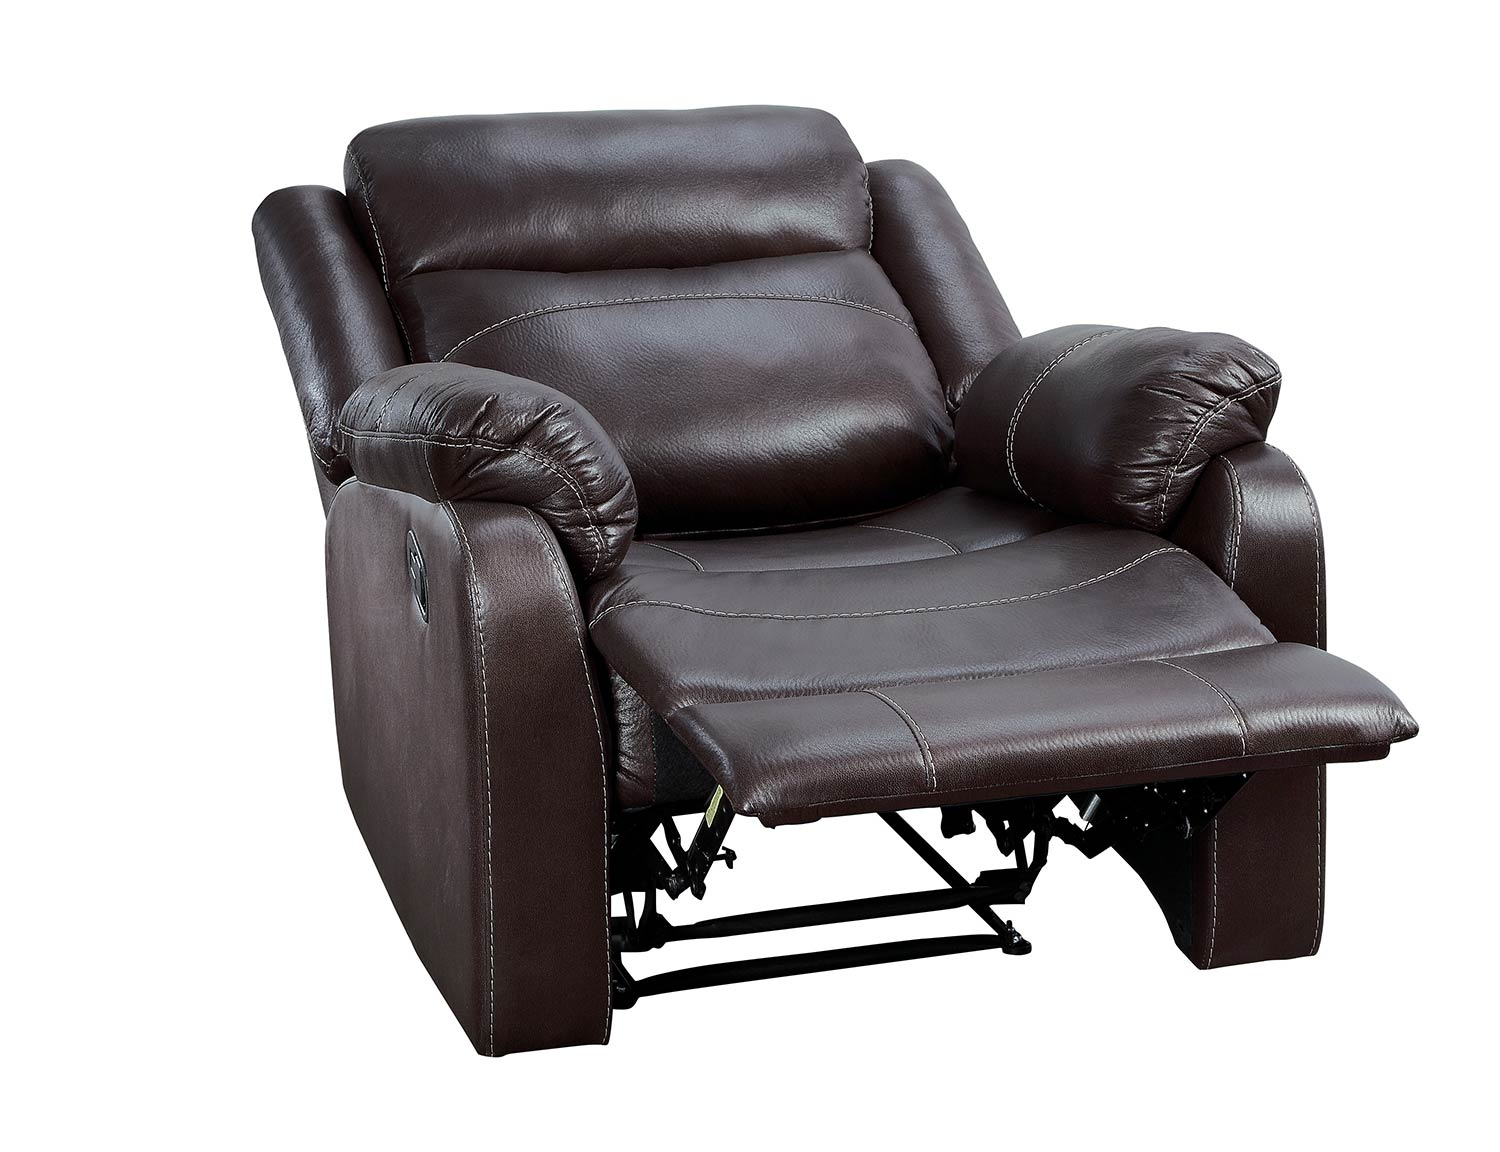 Homelegance Yerba Lay Flat Reclining Chair - Dark Brown